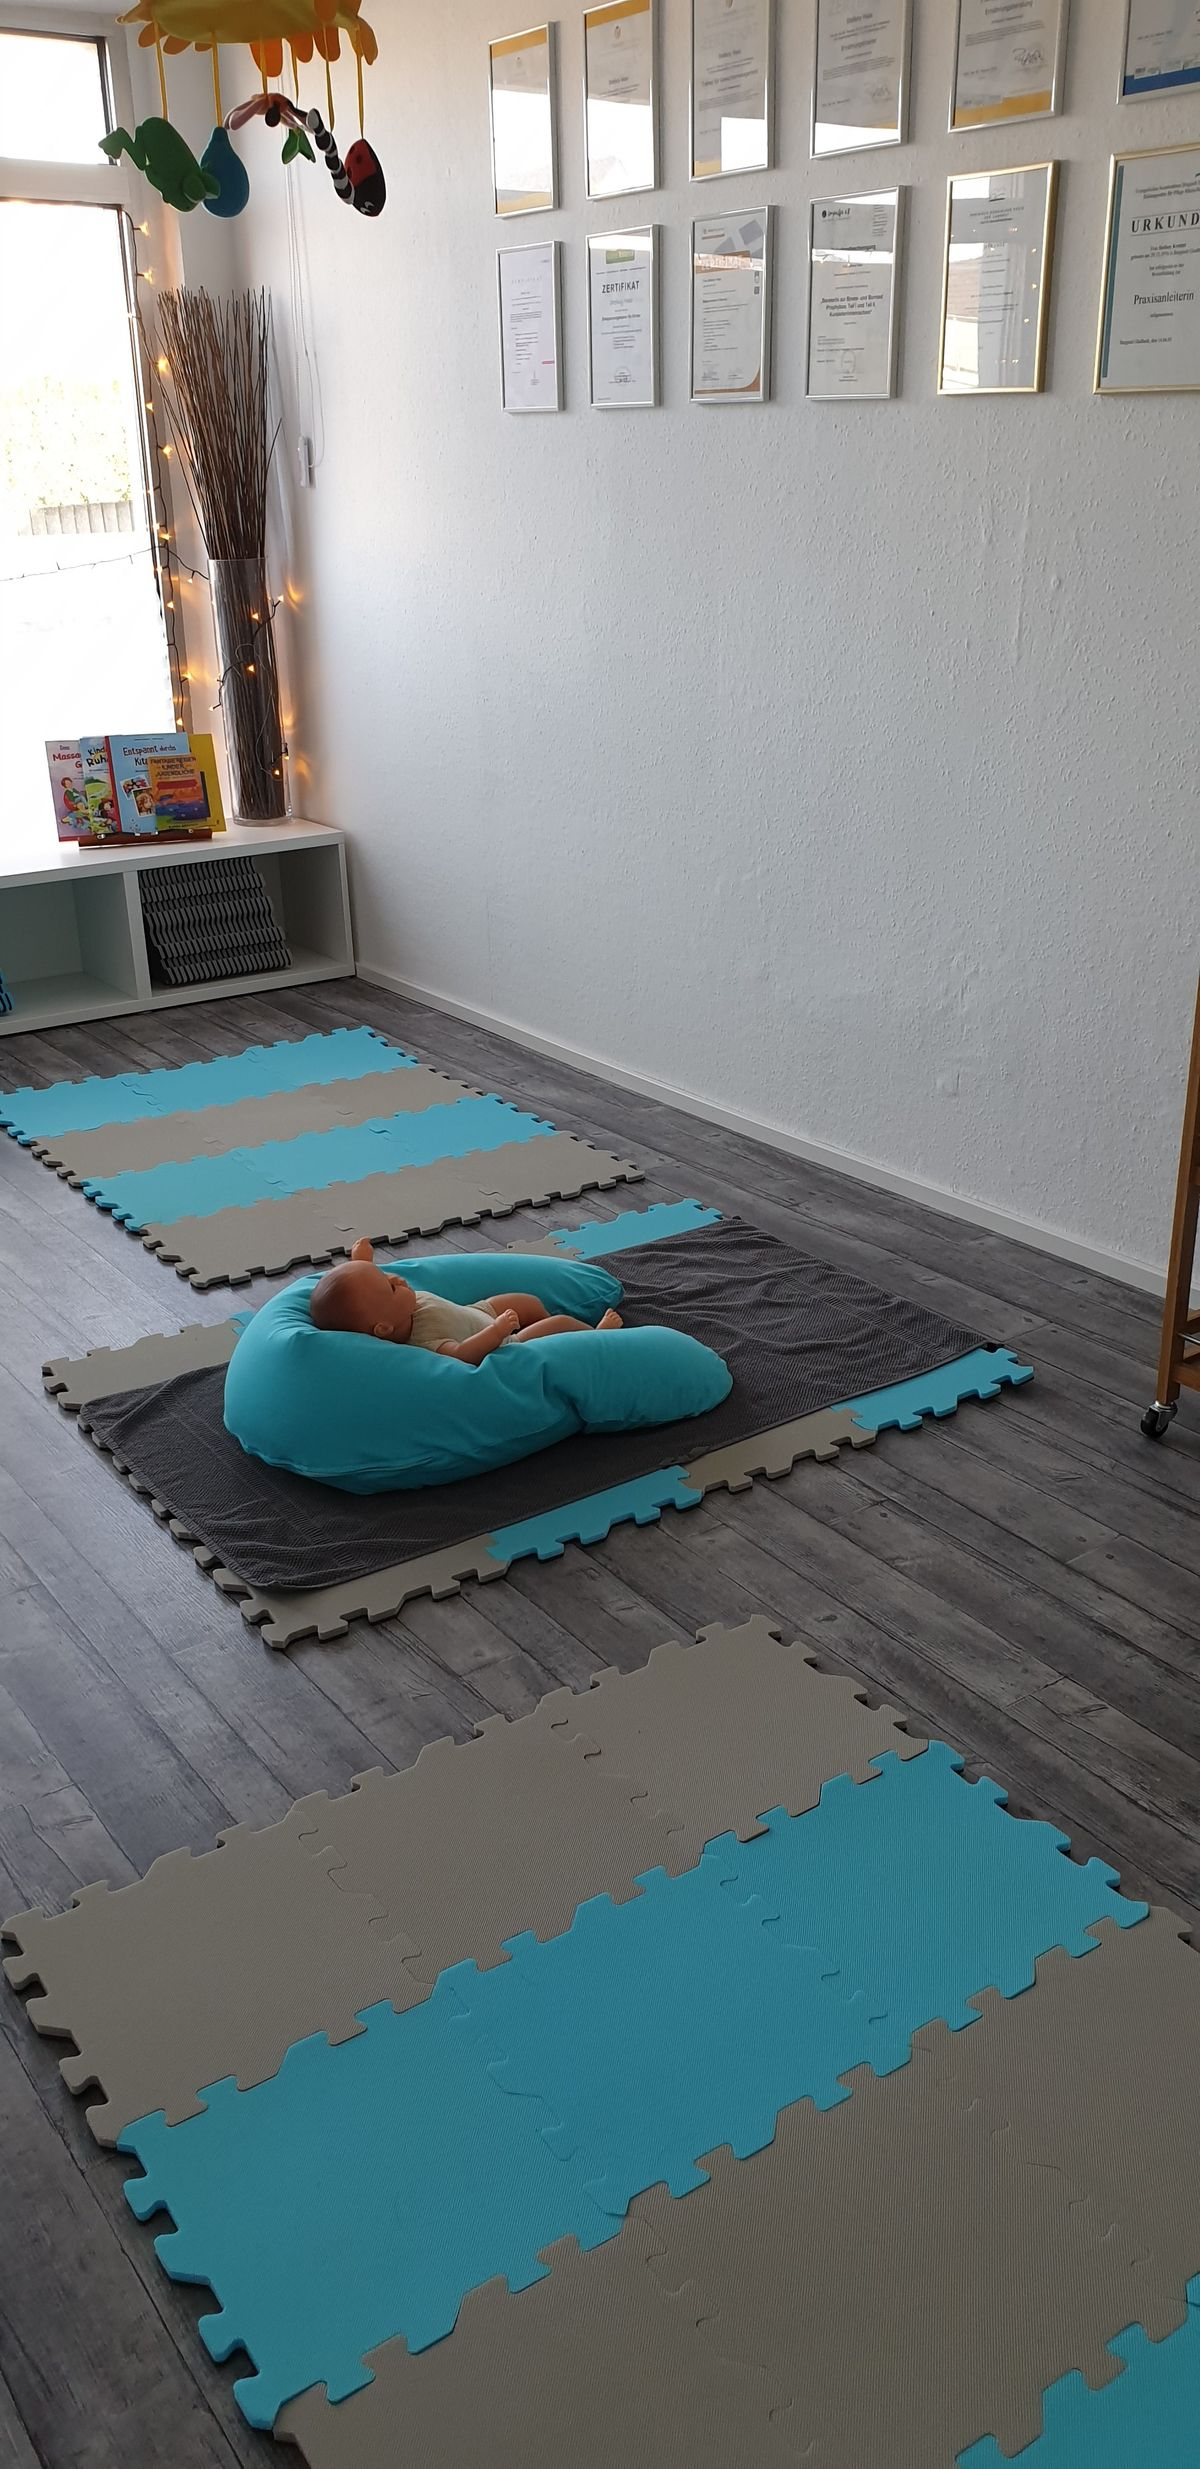 intensiver Babymassage-Kurs in Kleingruppe